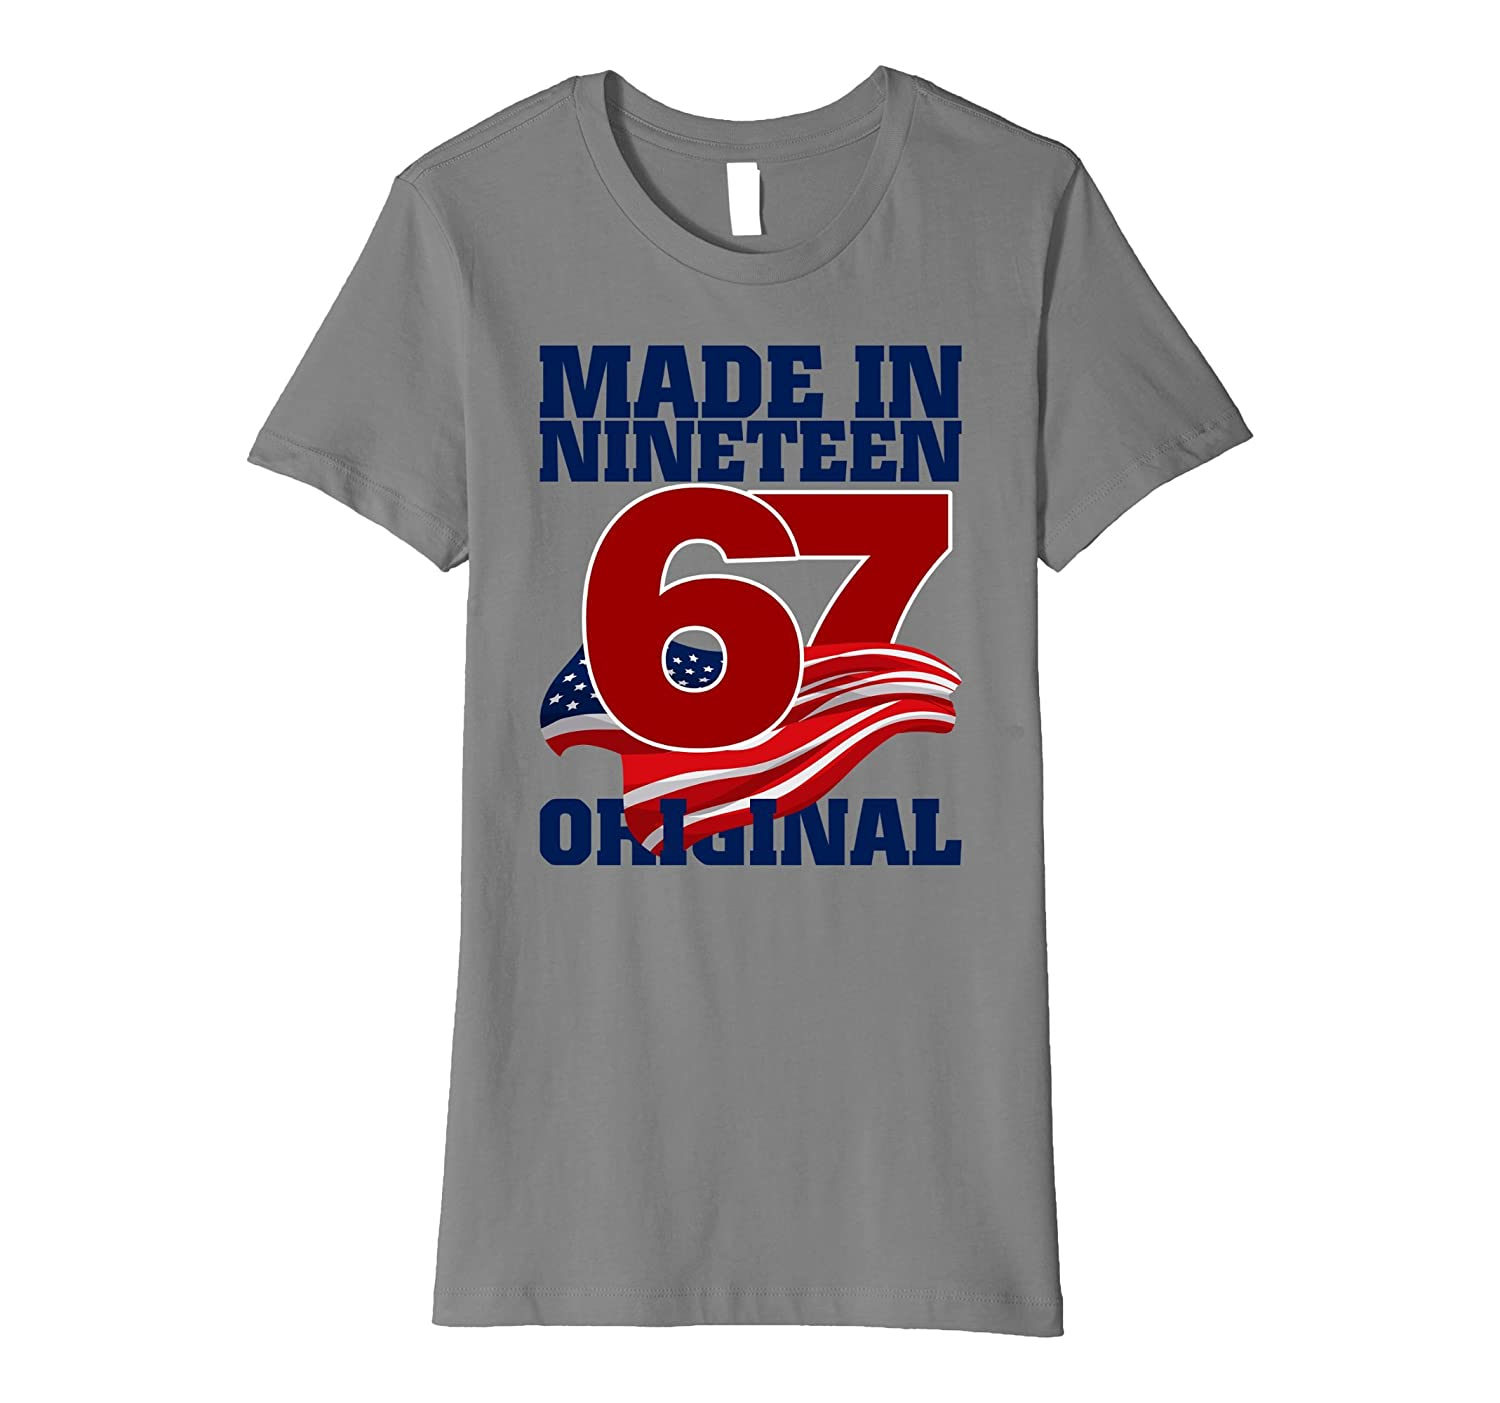 Awesome are born made in 1967 50 th Tshirt